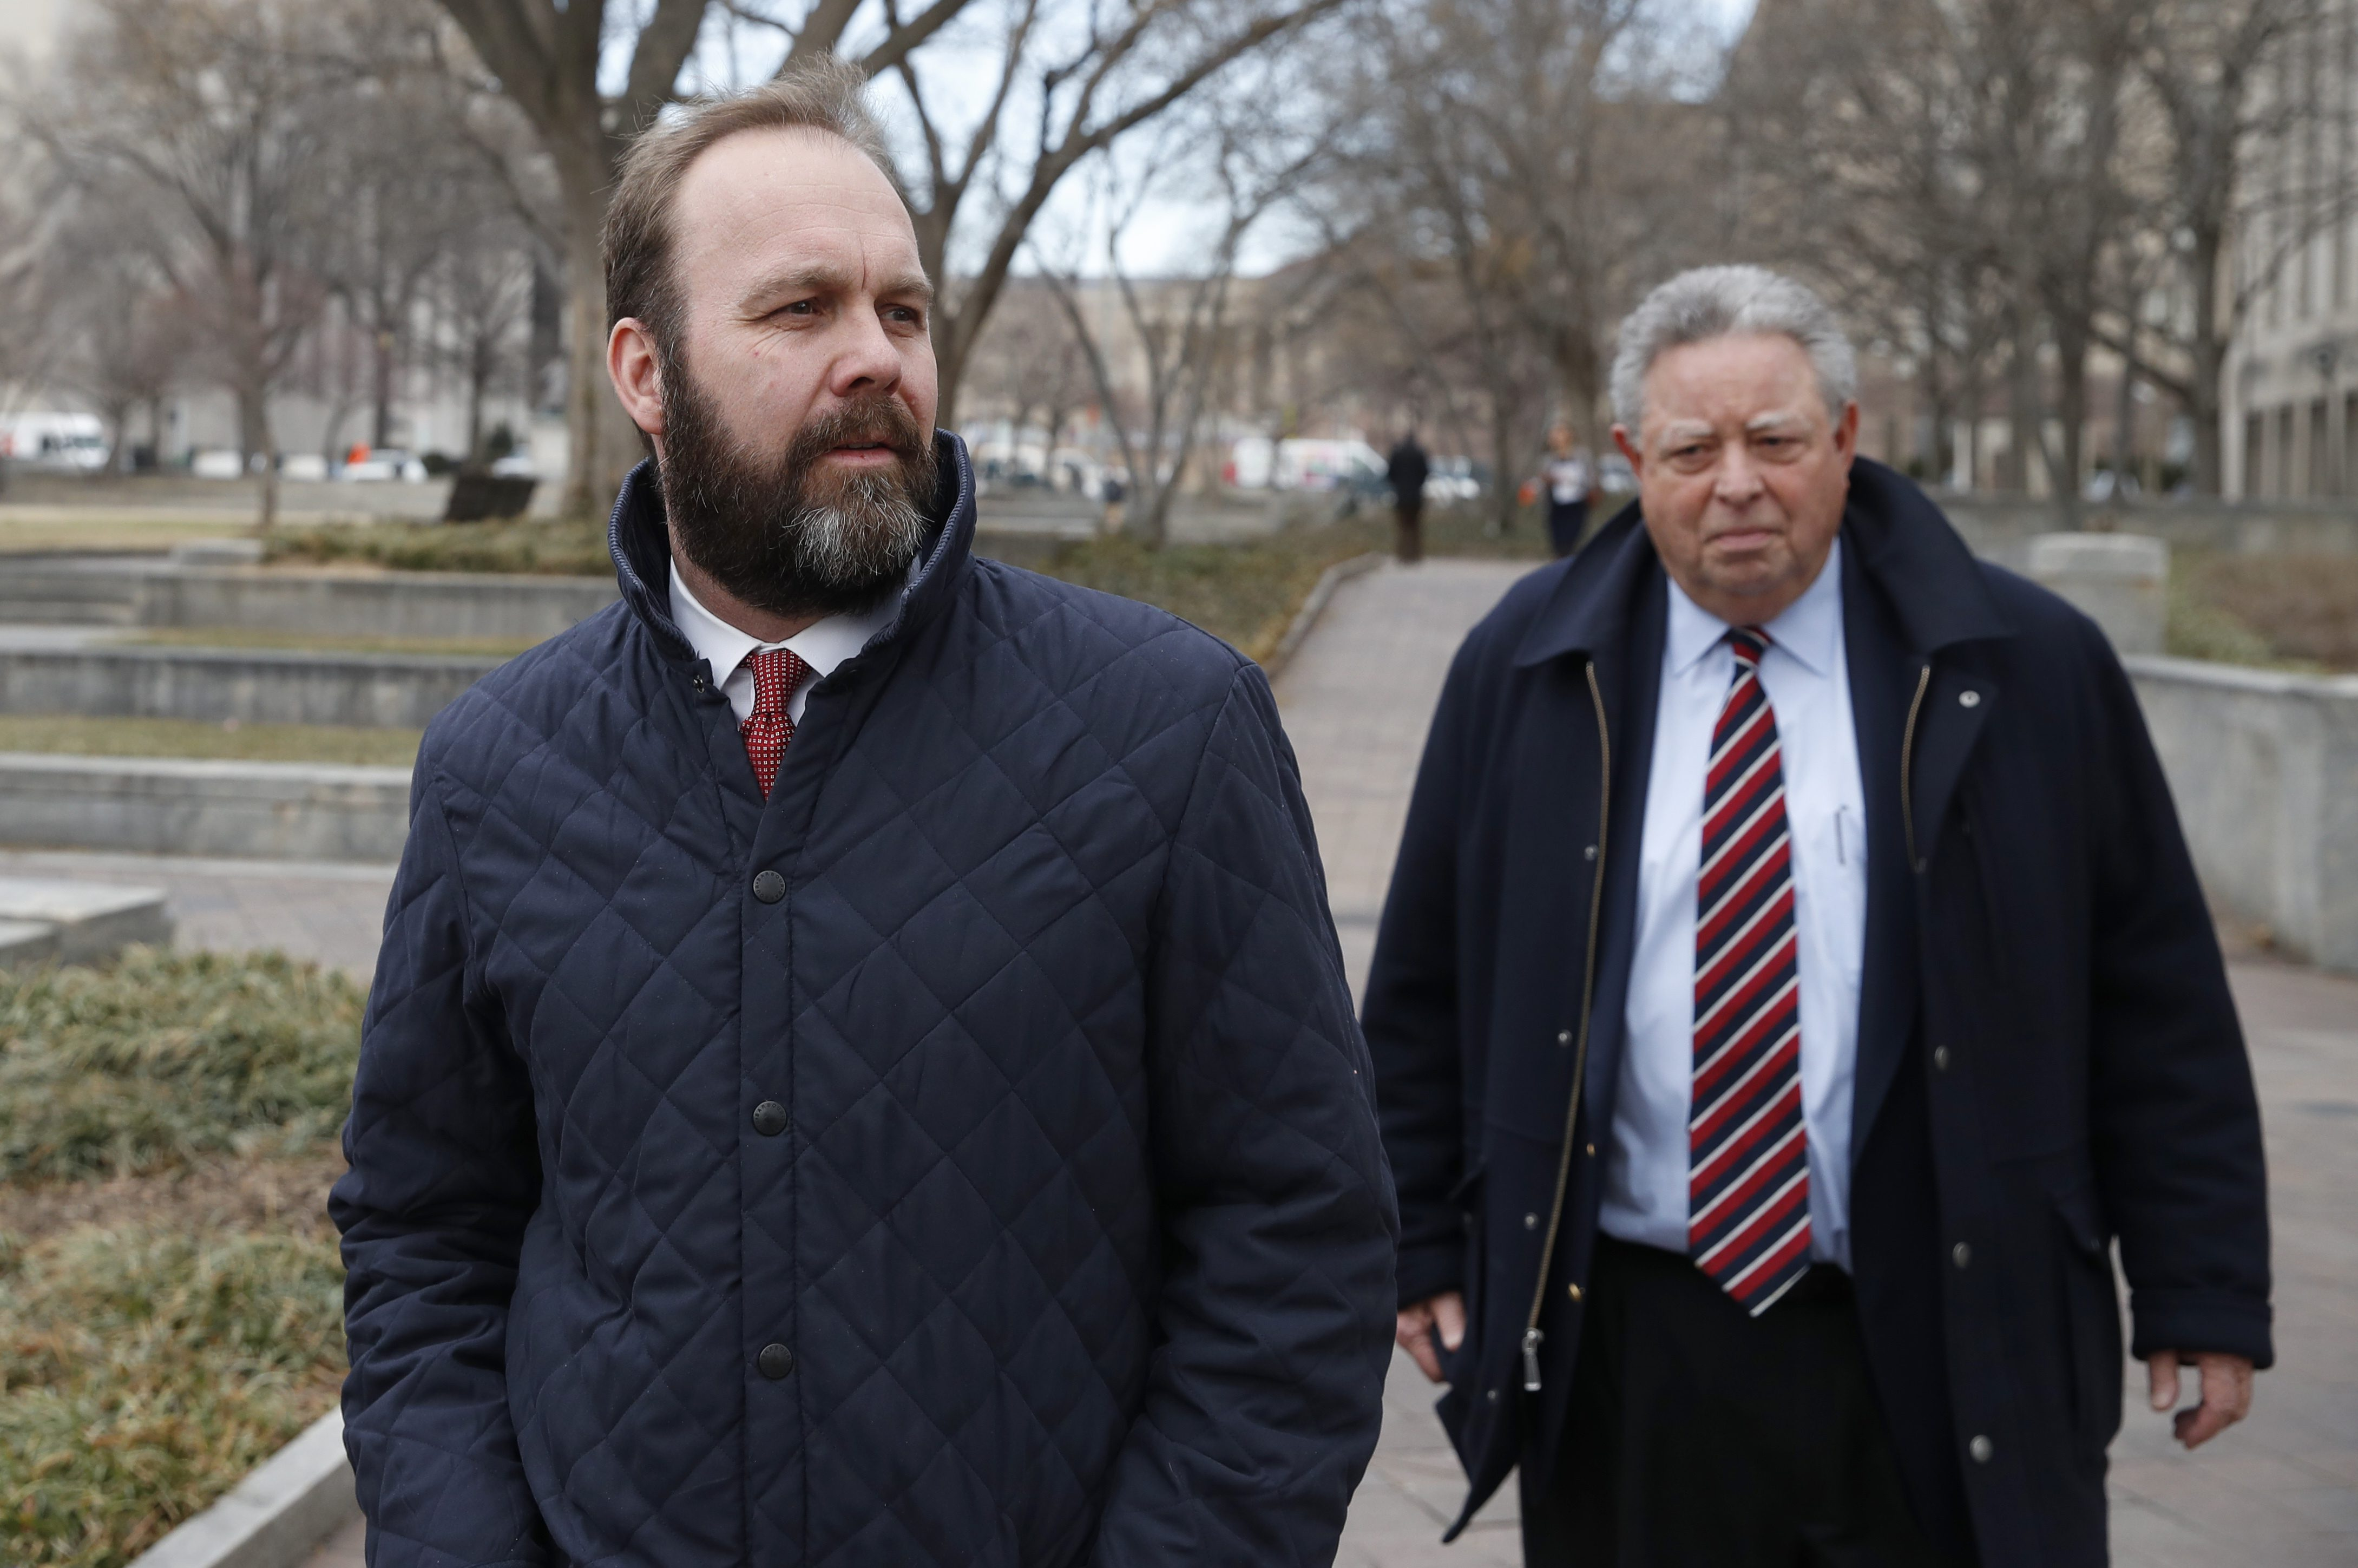 Gates has pled guilty to Robert Mueller's charges stemming back to his time with Paul Manafort as a spin doctor in Ukraine.